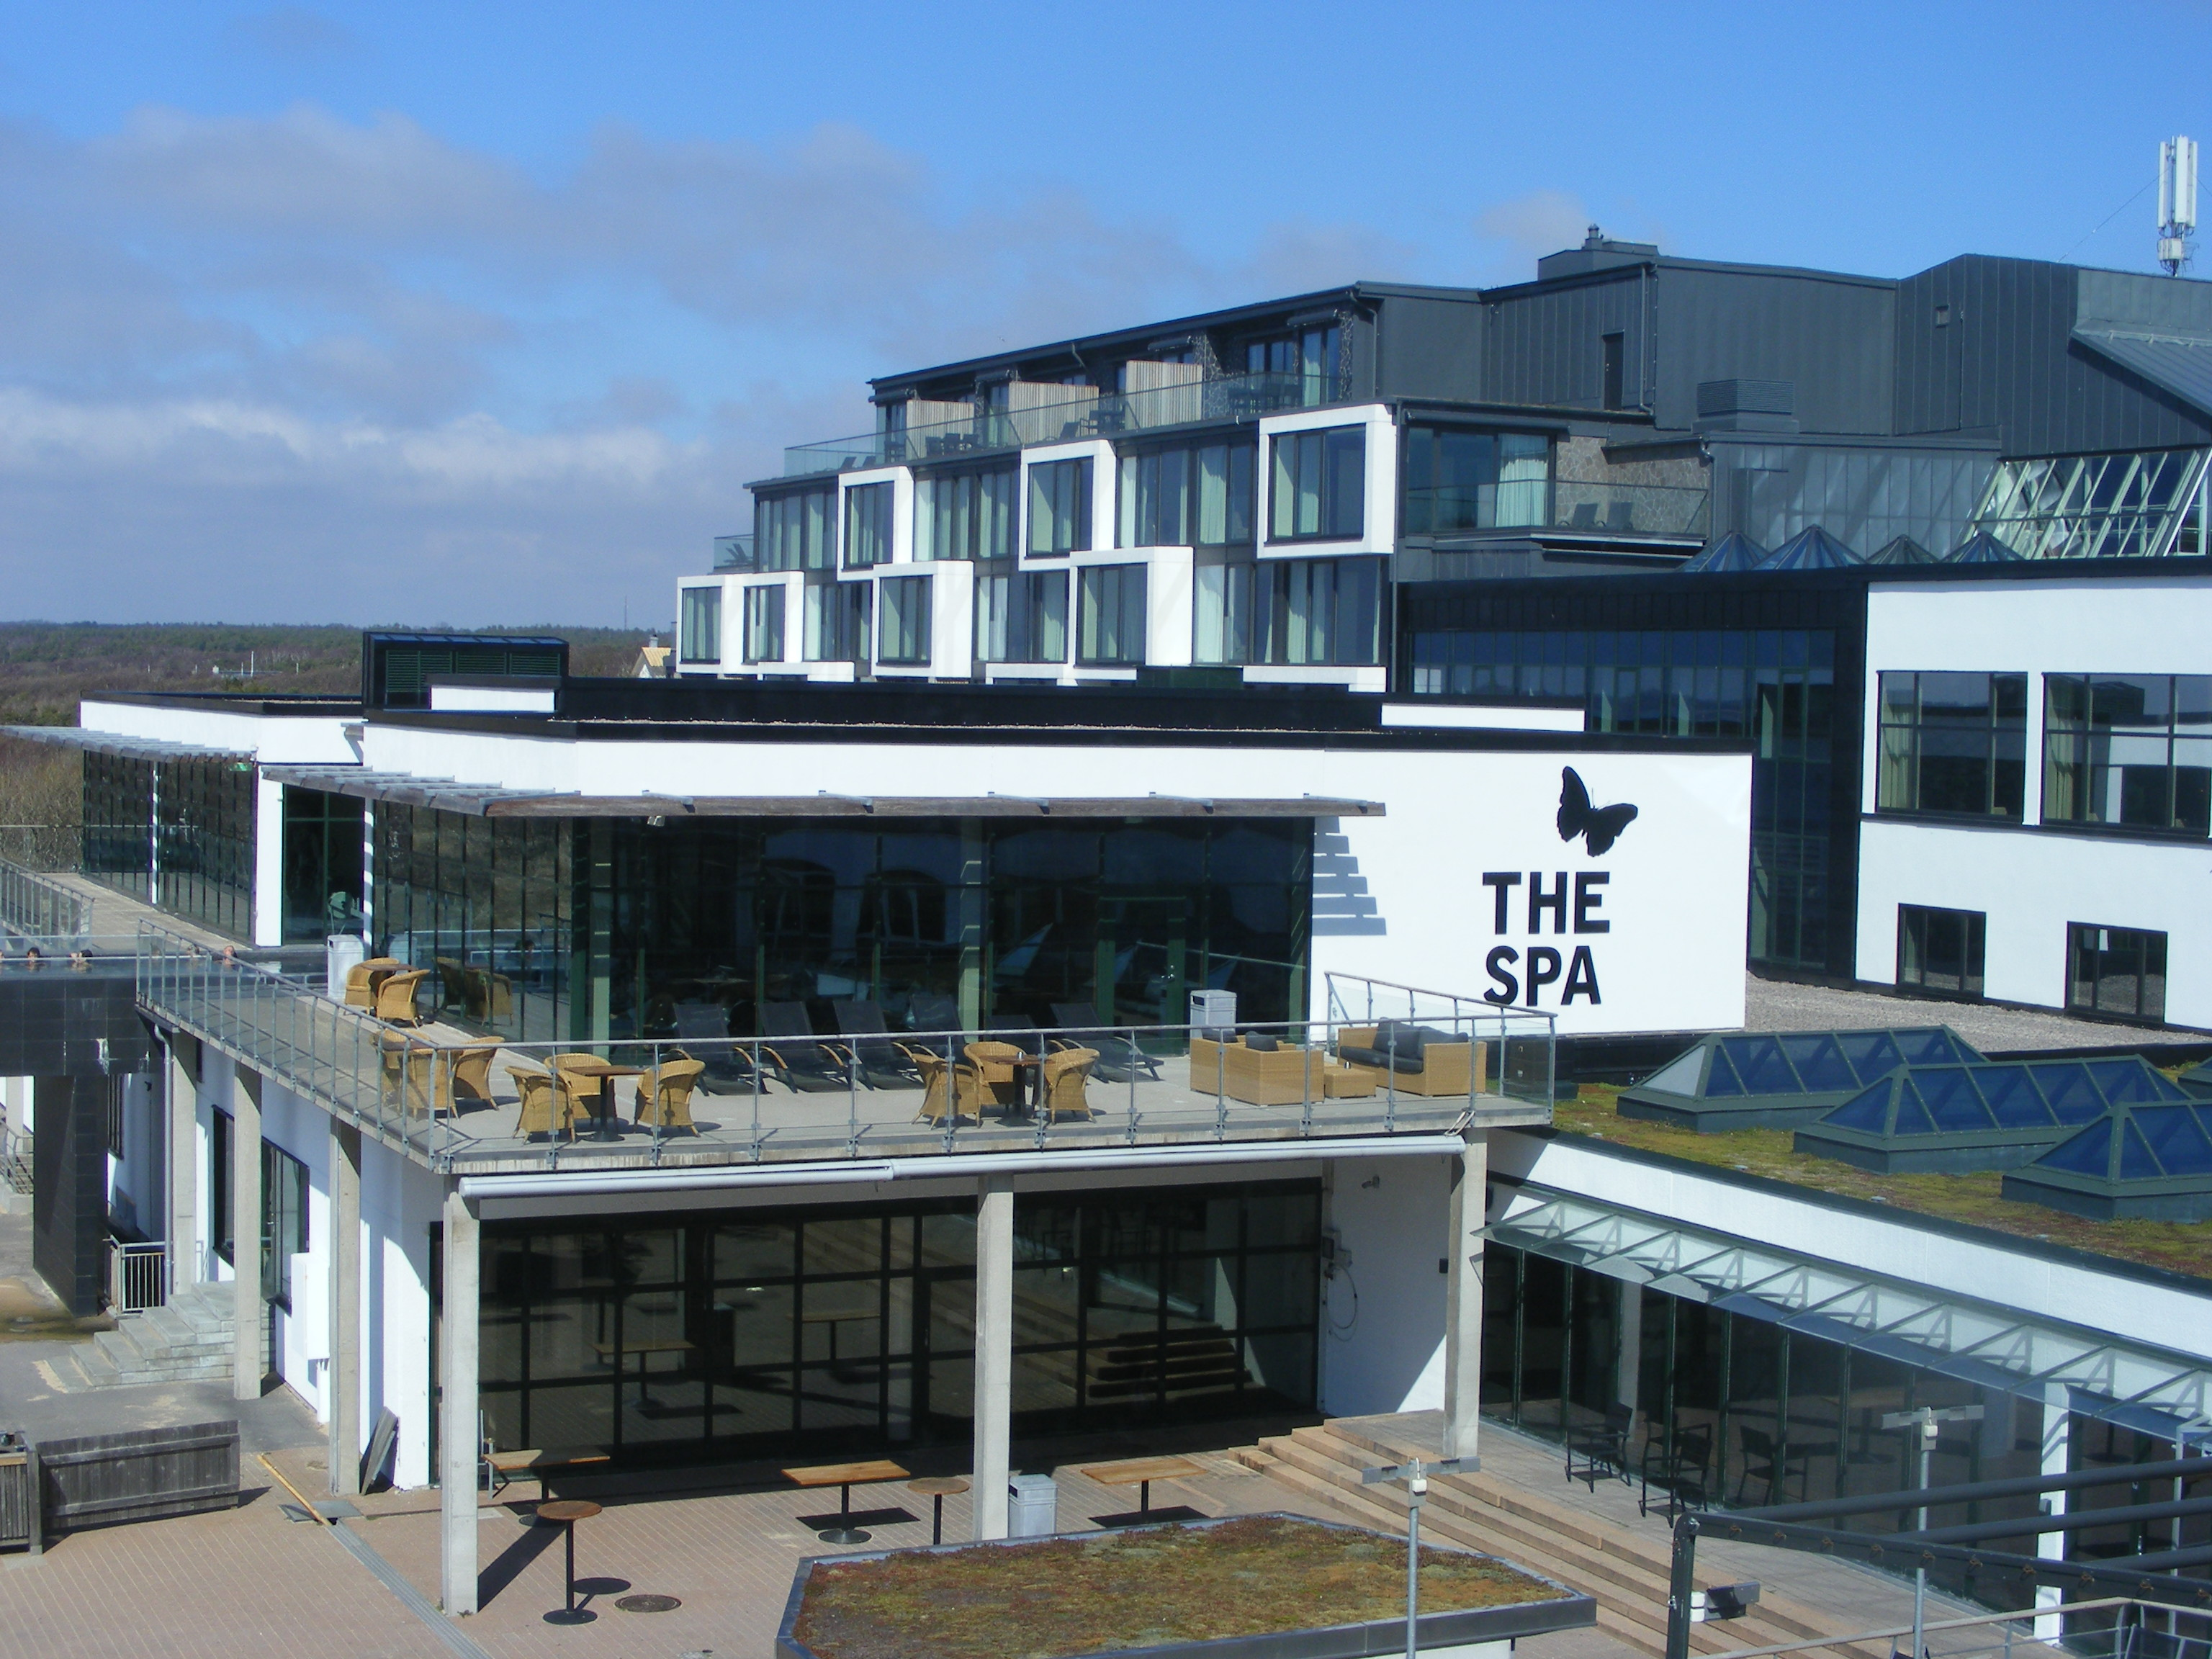 spa halland escorttjej gbg